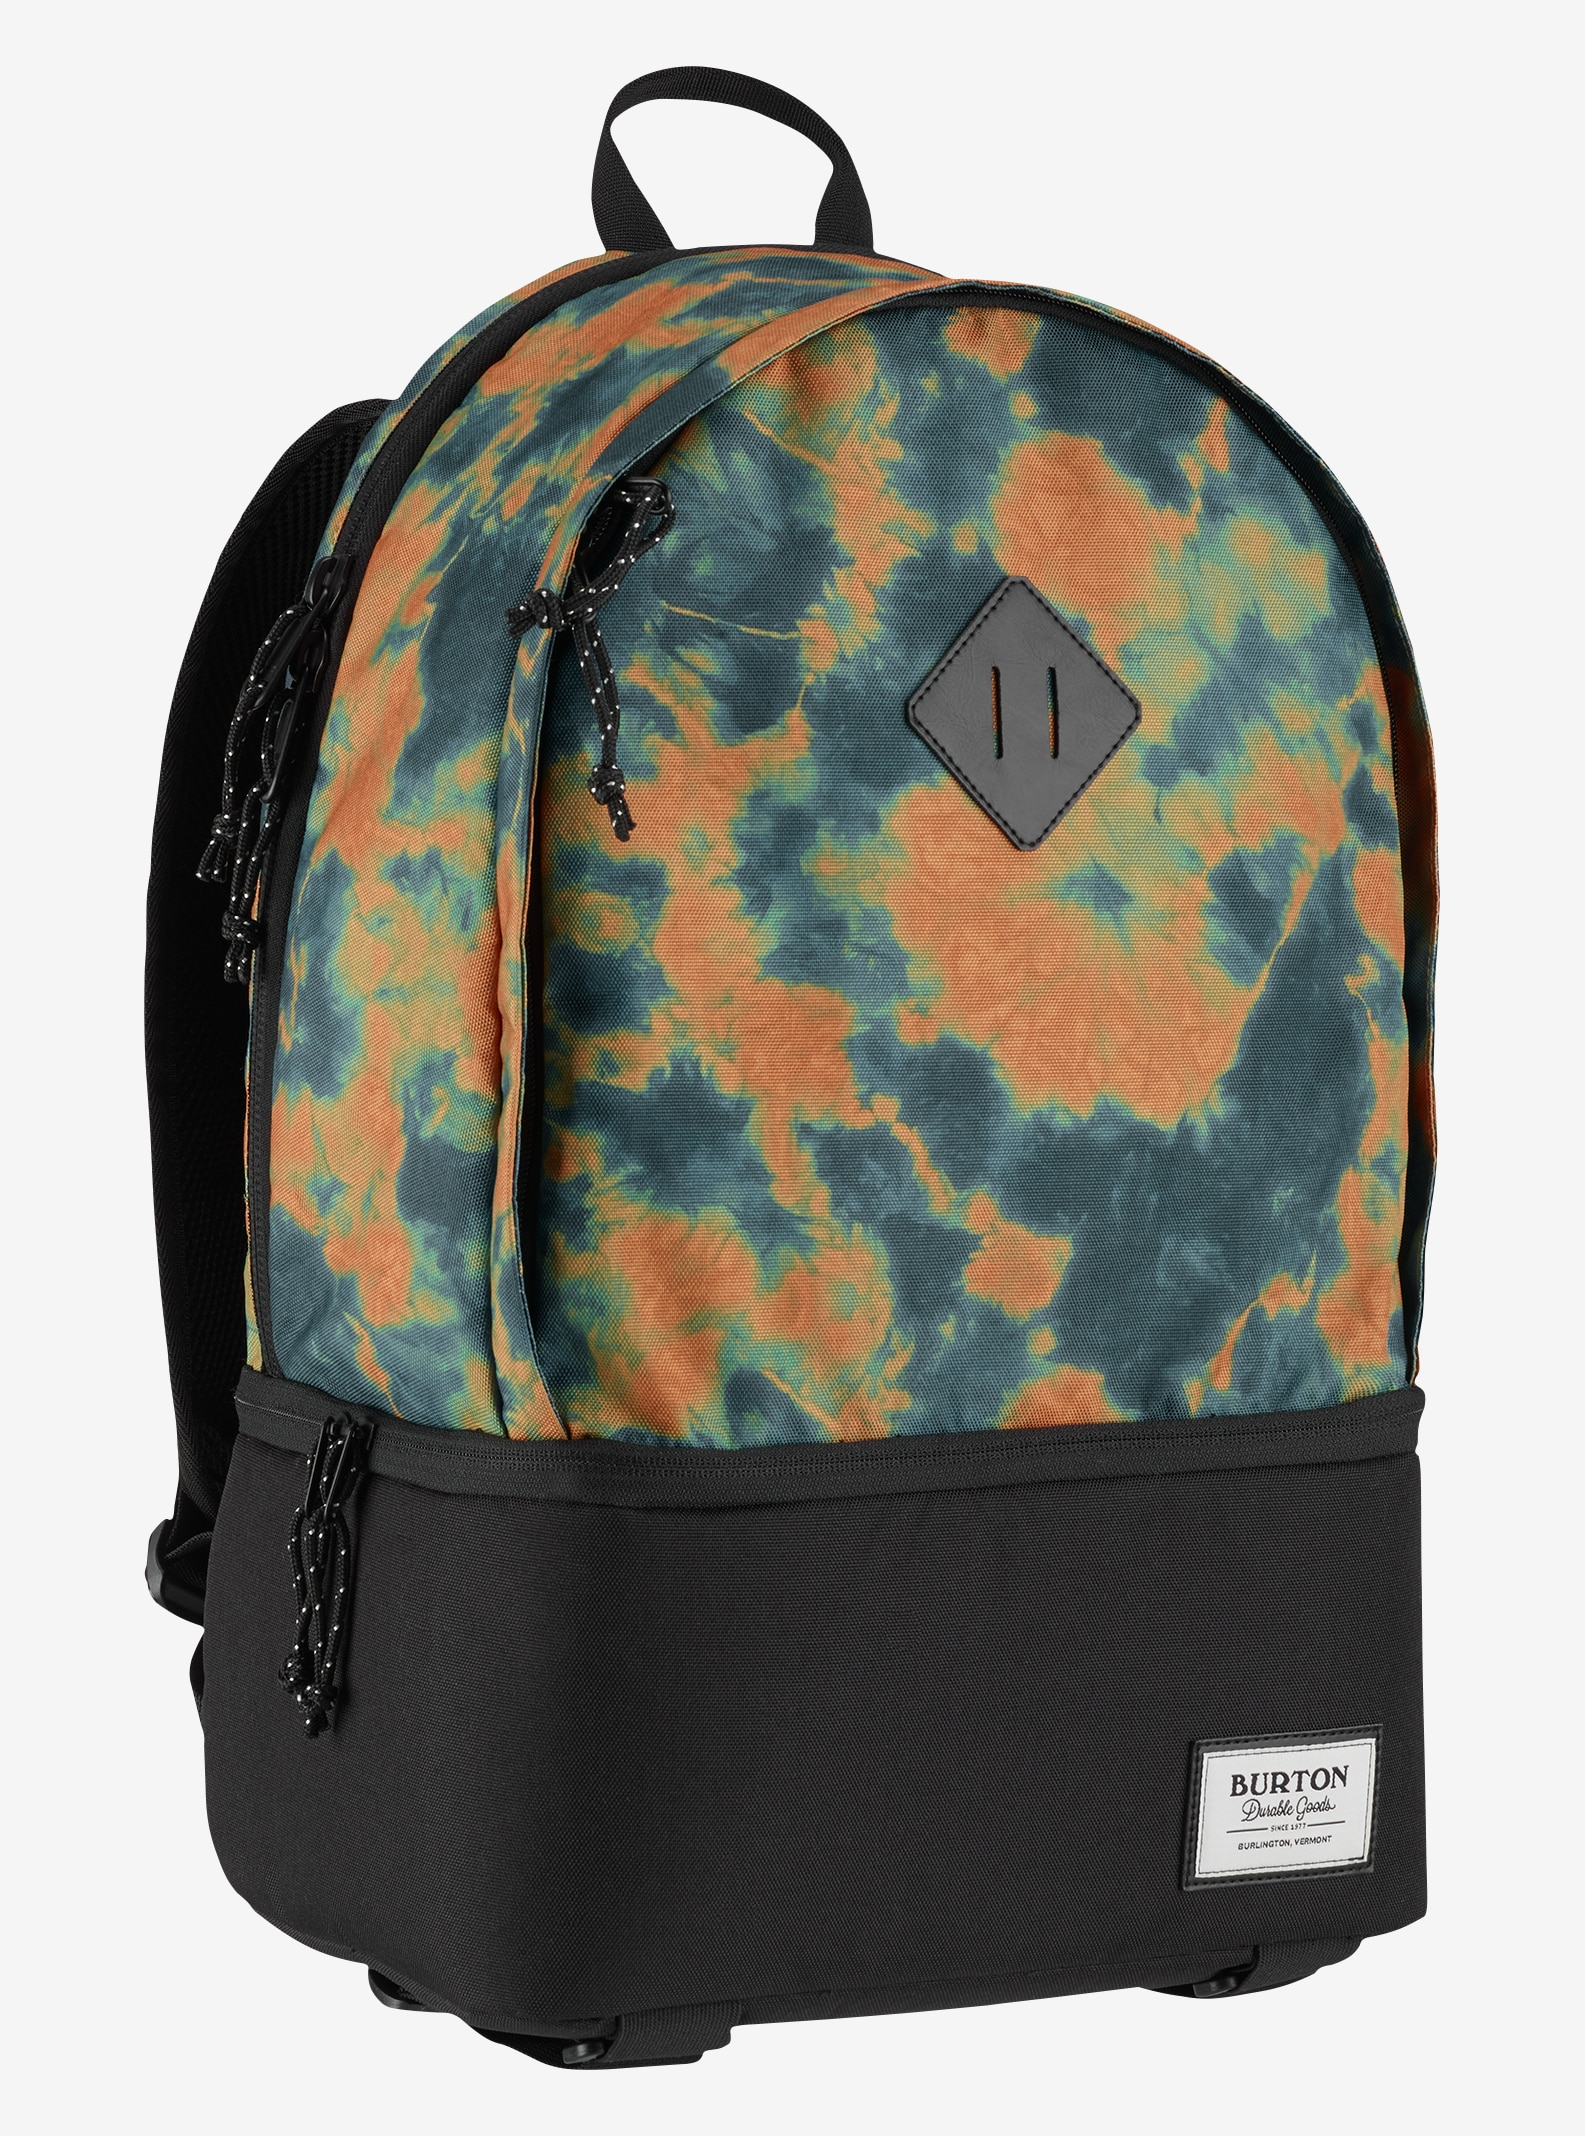 Burton Big Buddy Backpack shown in Mountaineer Tie Dye Print